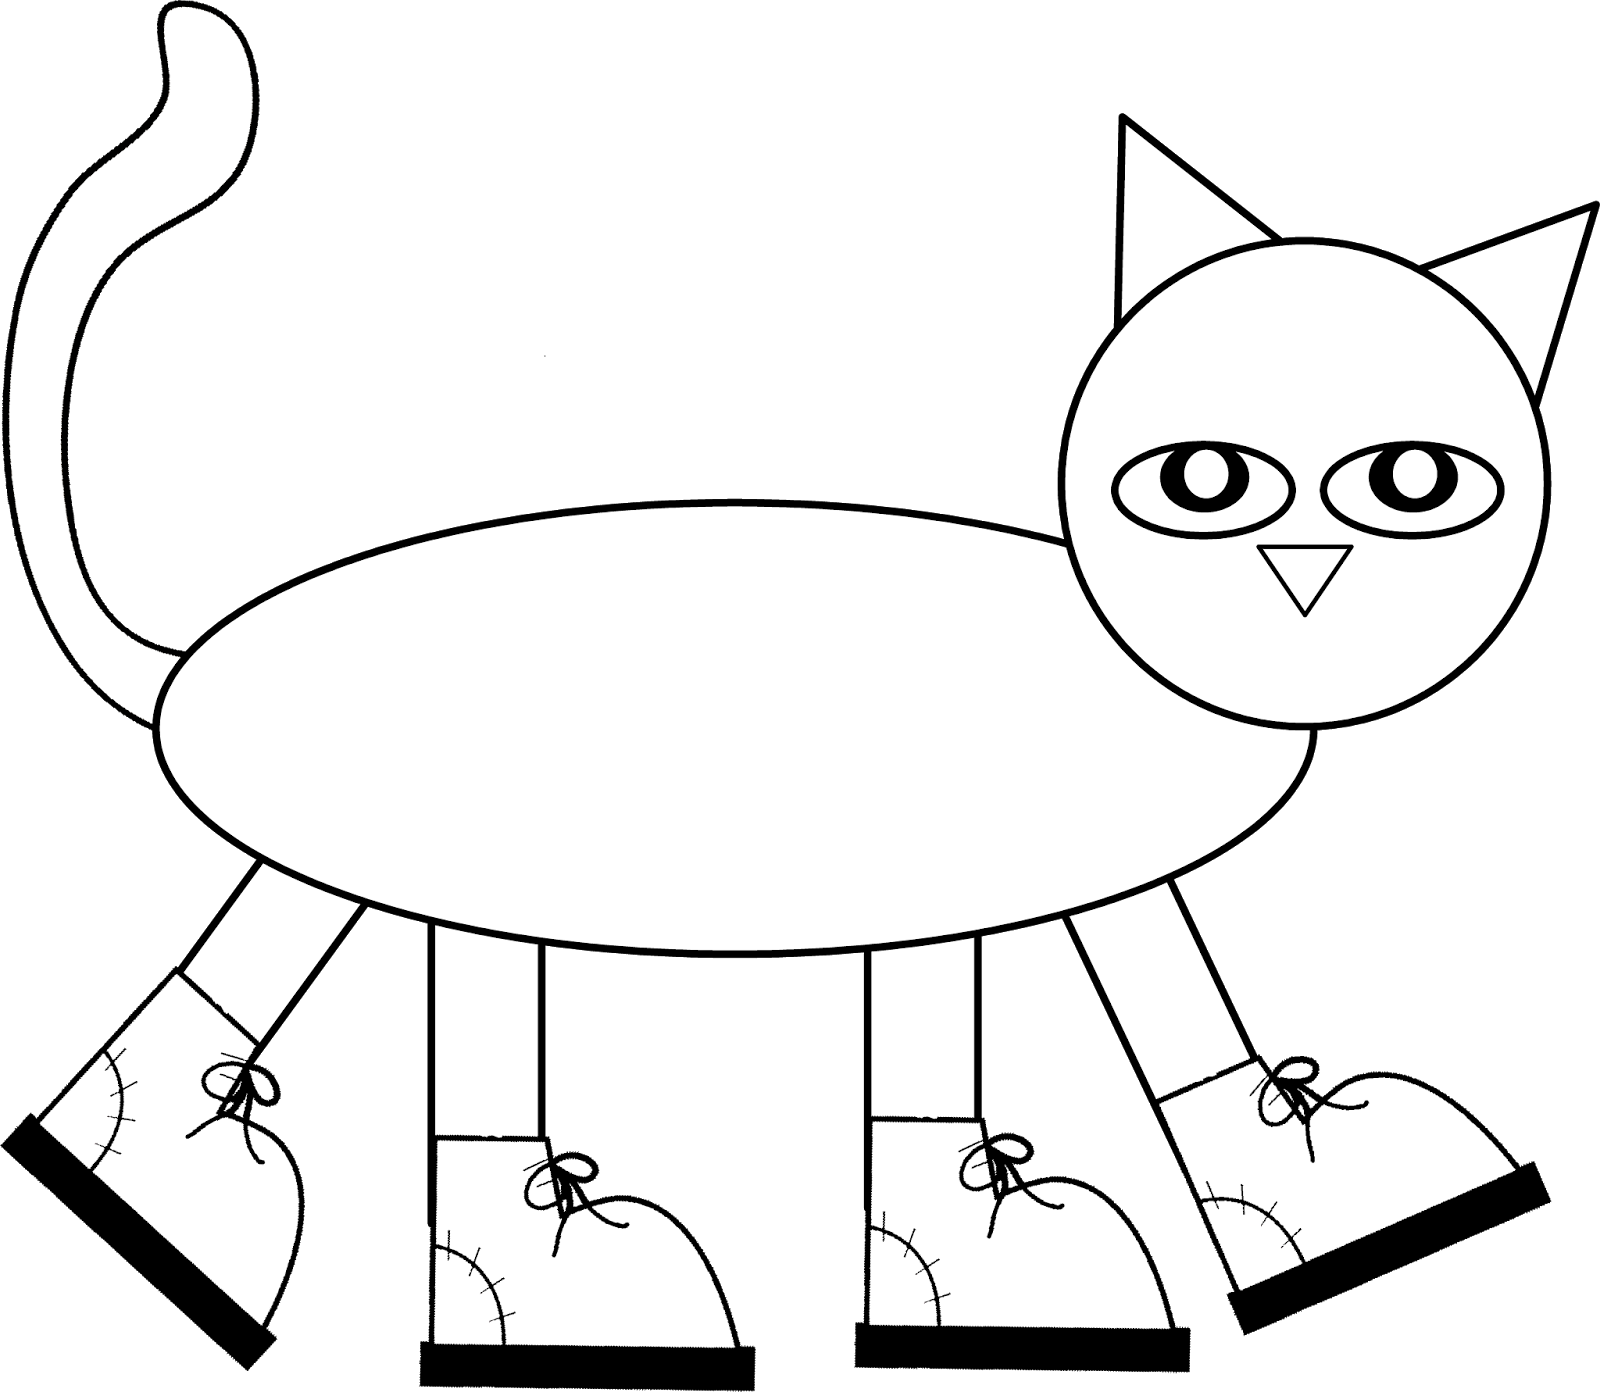 Cat and shoe clipart clipart royalty free download Pete the Cat Pattern to color, cut, and assemble! Children love ... clipart royalty free download